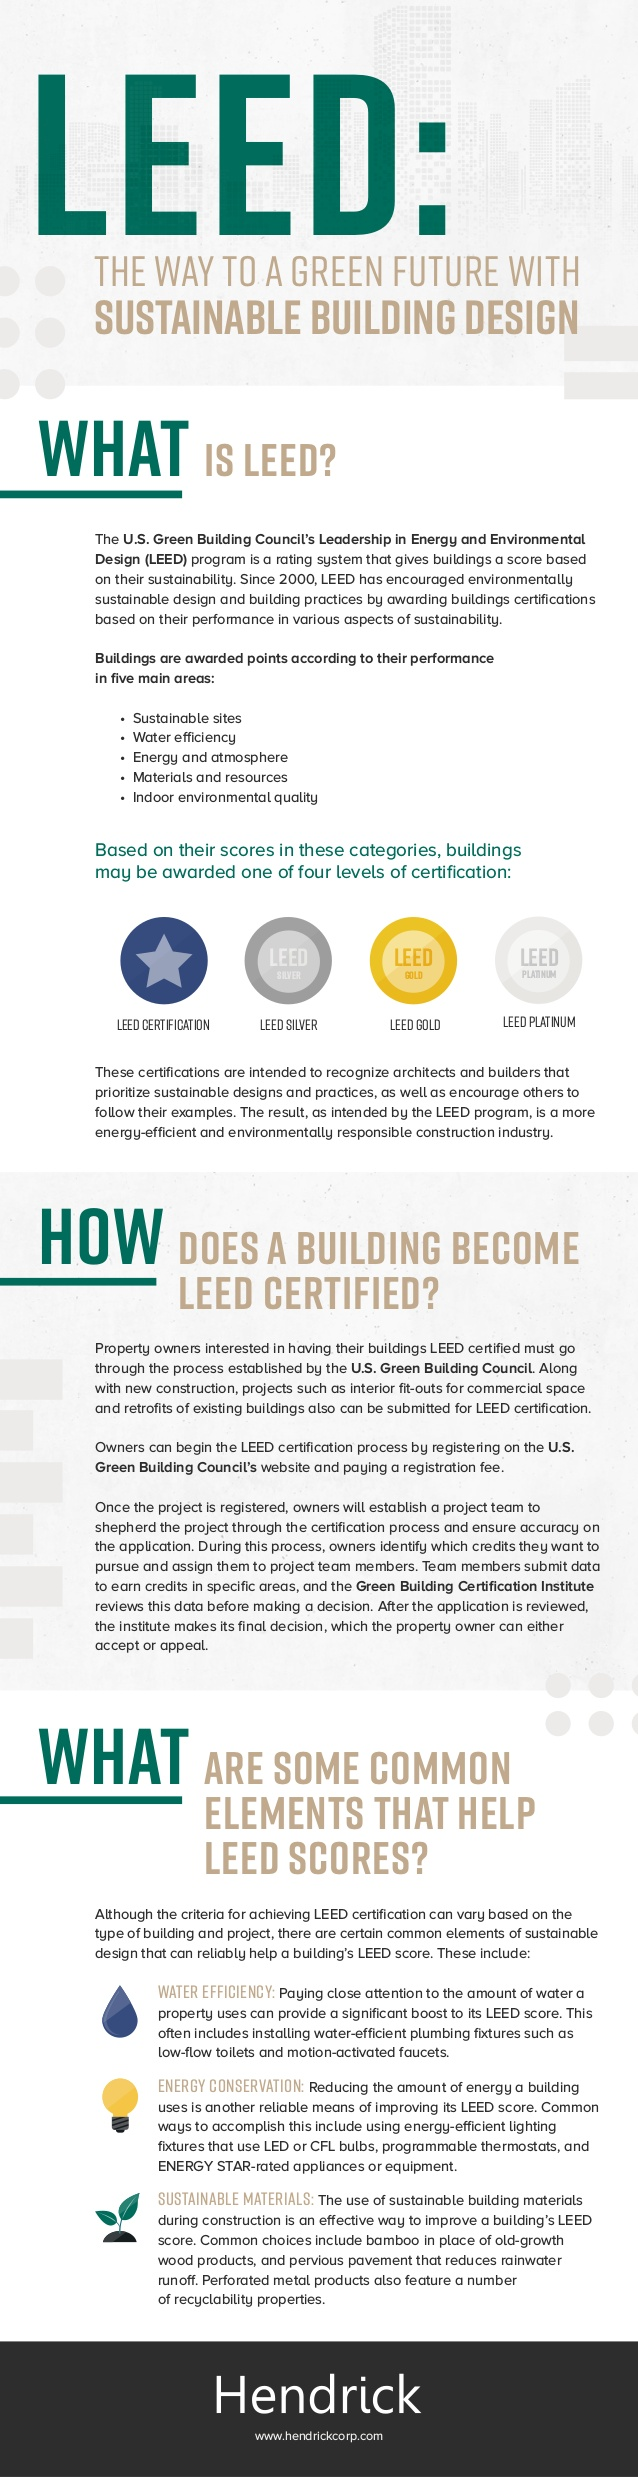 leed-sustainable-building